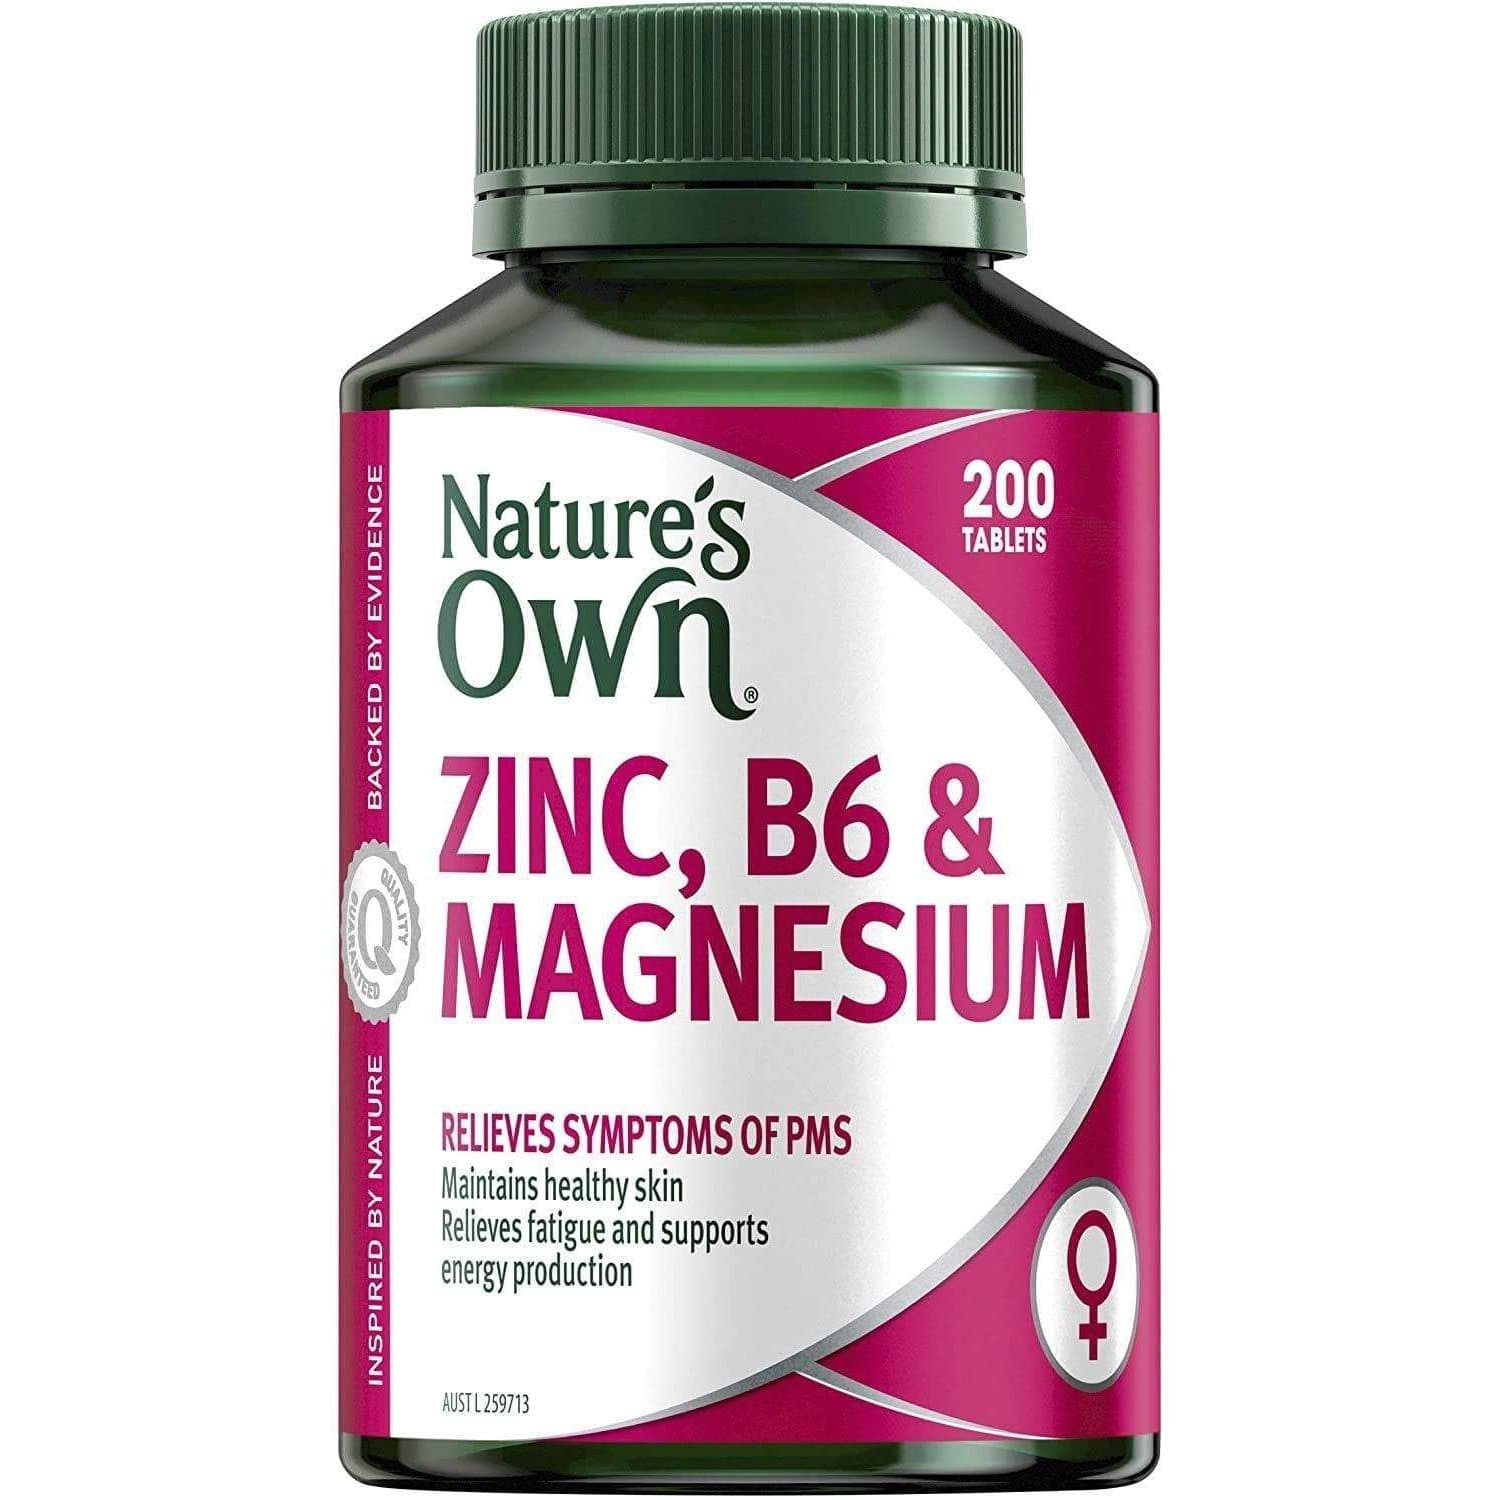 Nature's Own Zinc Supplement - Vitamin B6 & Magnesium 200 Tablets-Curavita